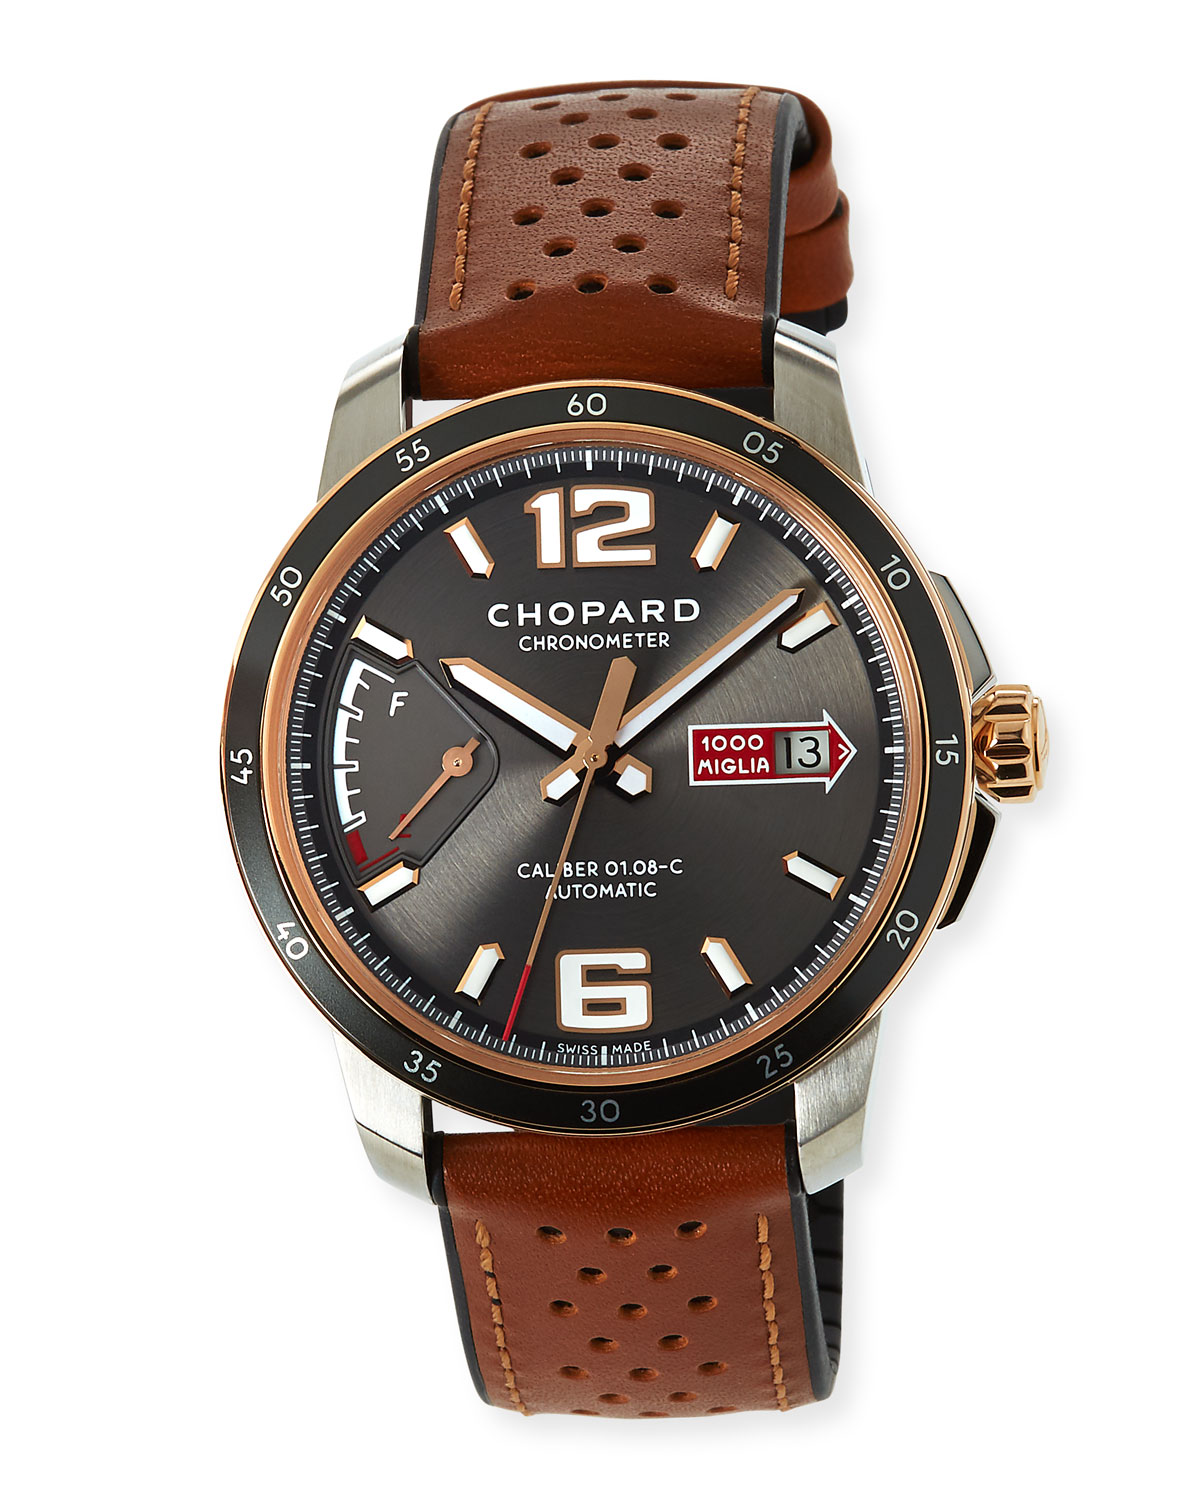 43mm Mille Miglia Watch with Perforated Strap